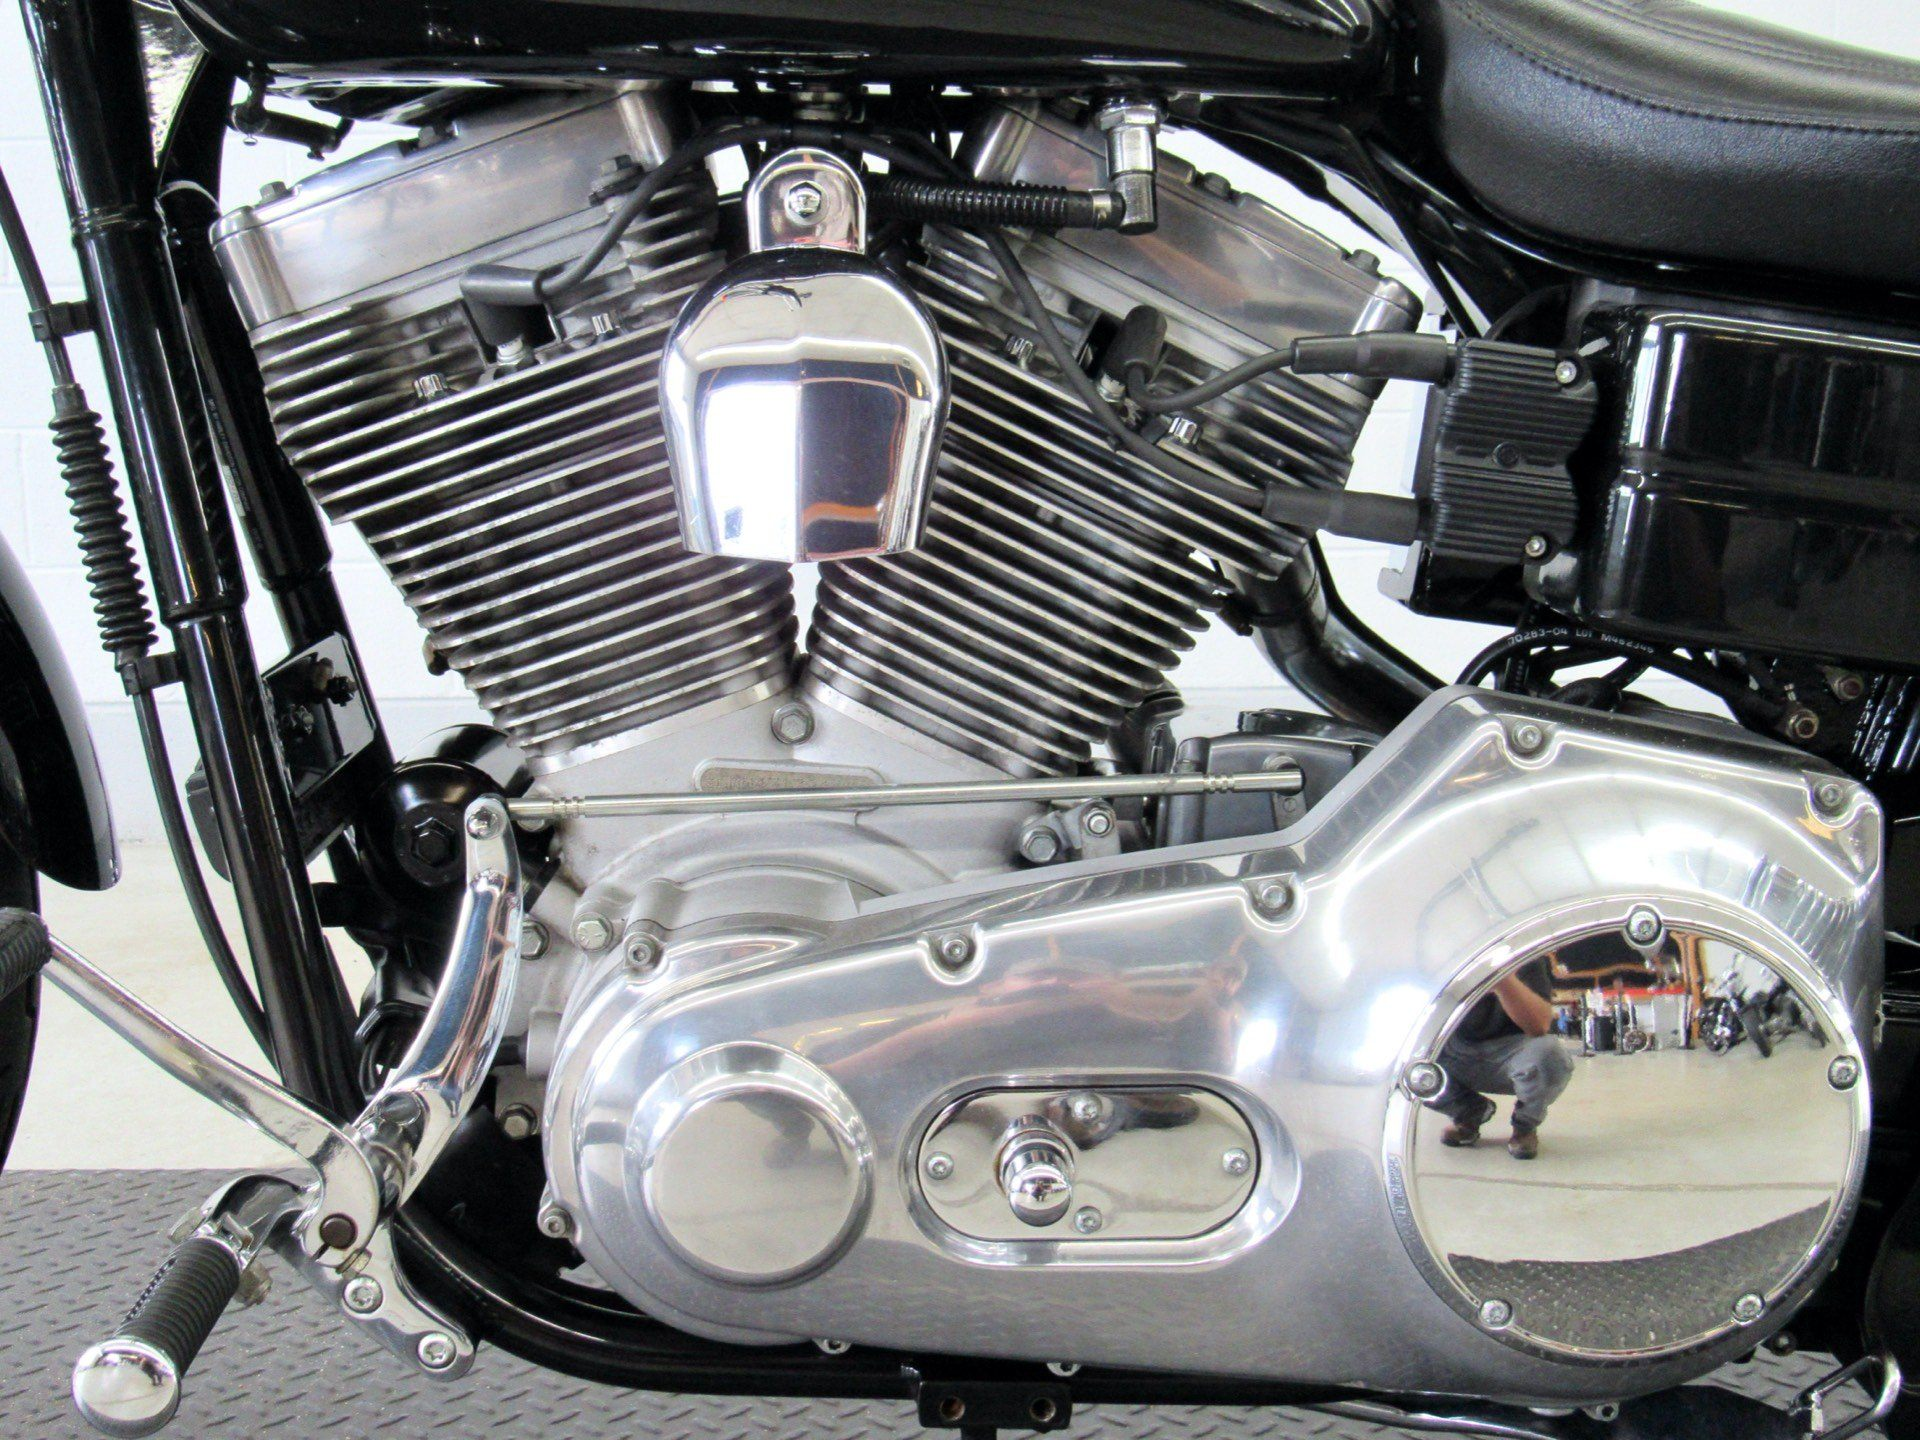 2004 Harley-Davidson FXD/FXDI Dyna Super Glide® in Fredericksburg, Virginia - Photo 19